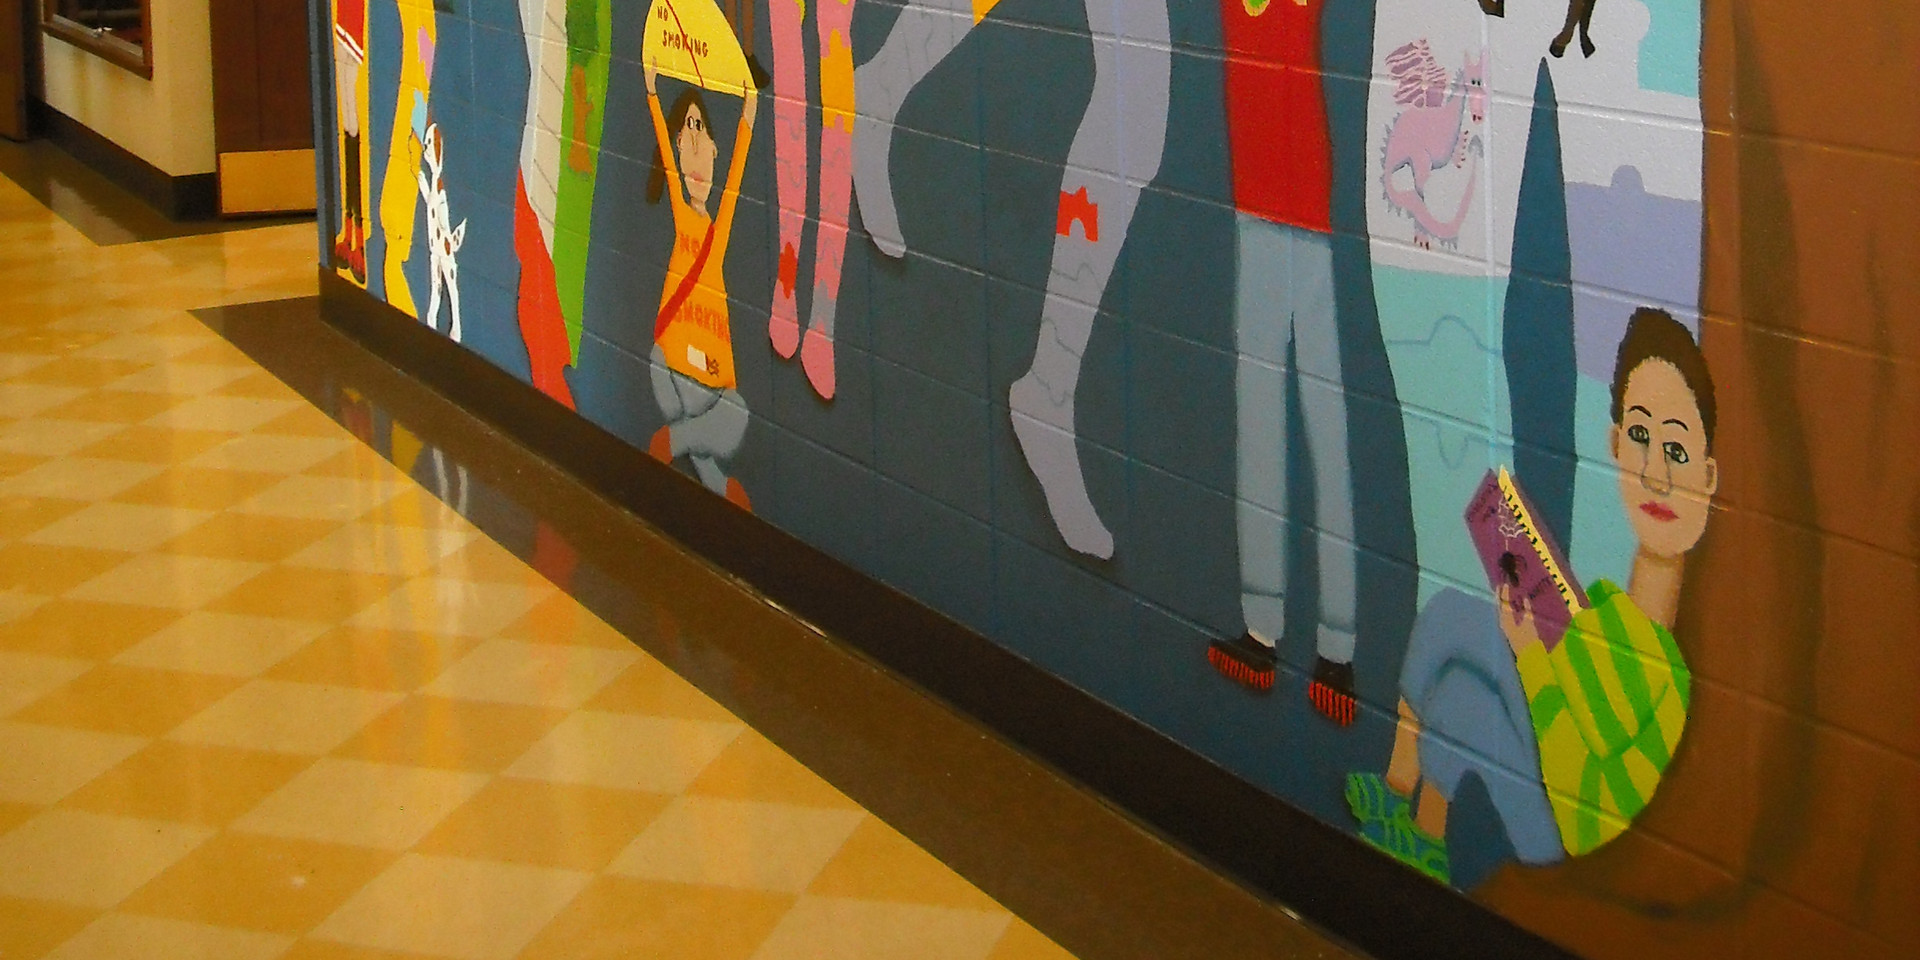 South school mural, Des Plaines